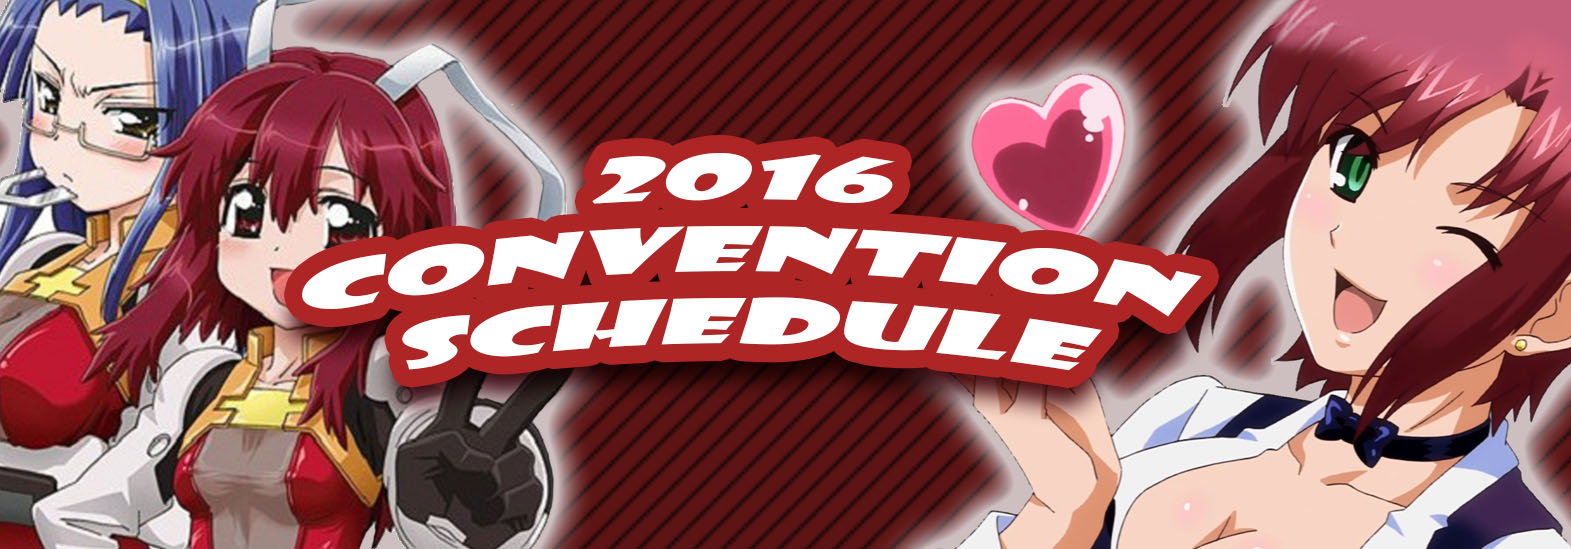 Find us at these 2016 Conventions!